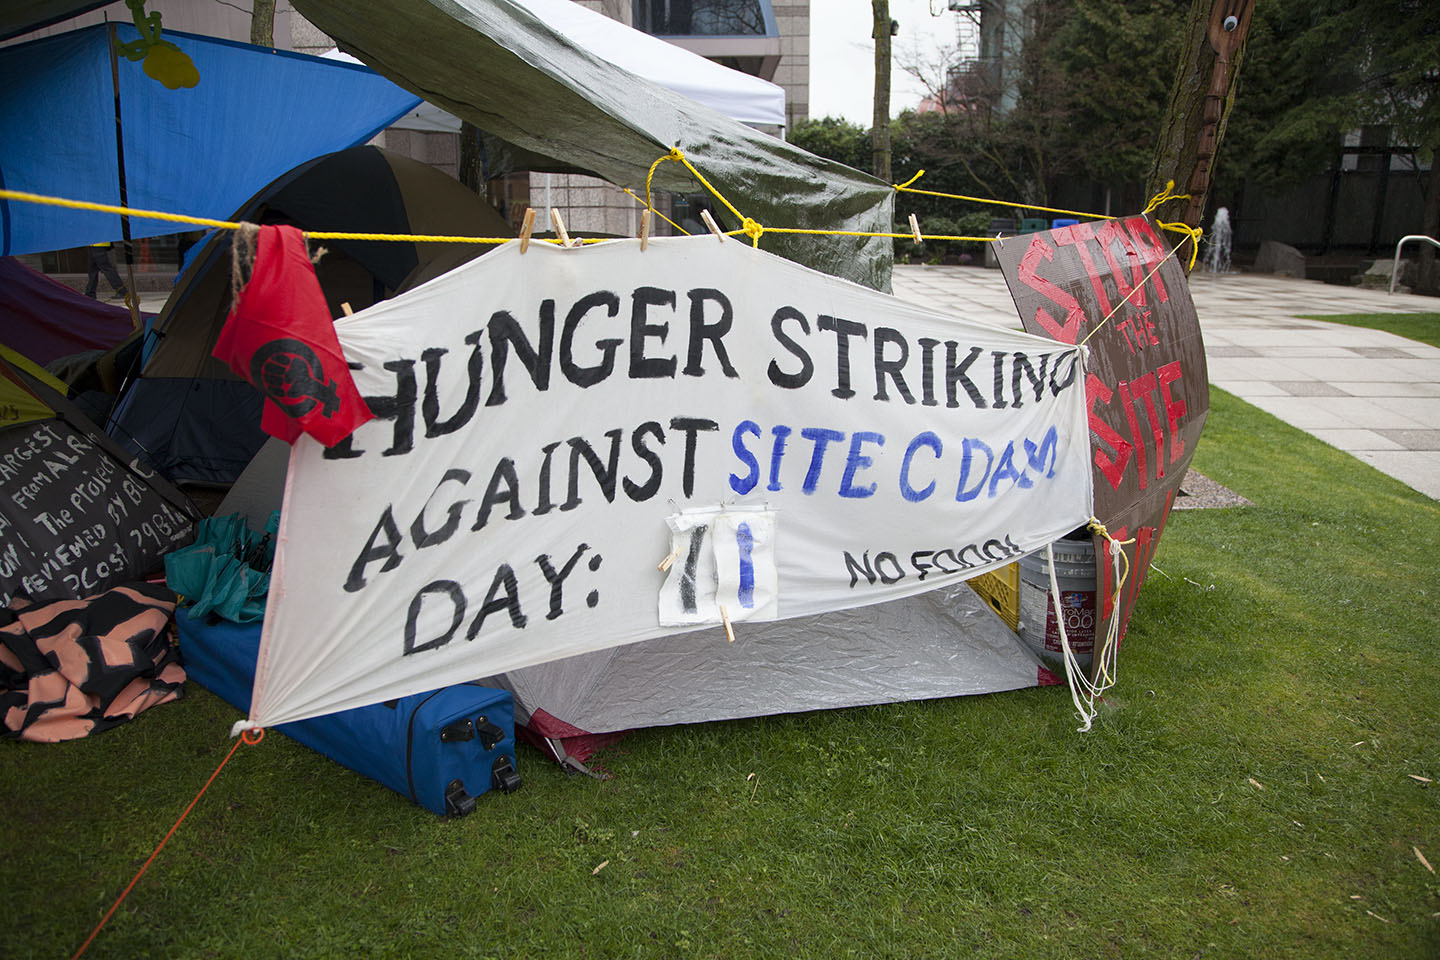 Eleven Days & Counting: Hunger Strike Against Site C